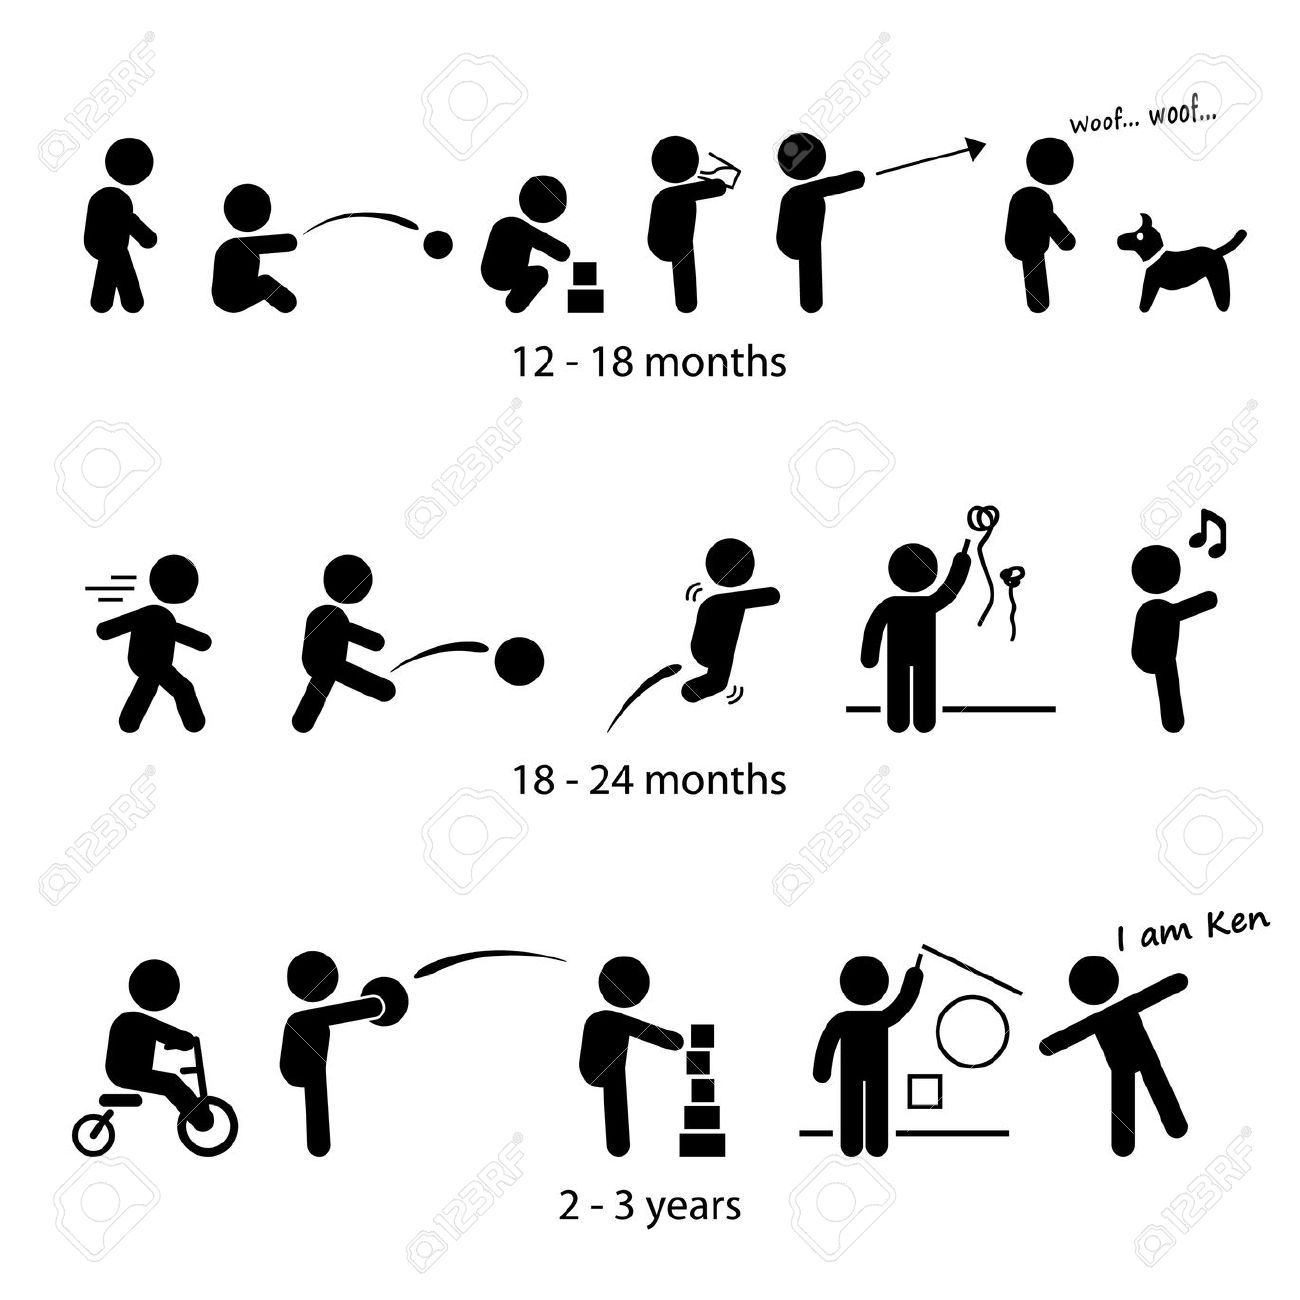 Children milestones clipart clipart download Pin by Anahy on Growth and Development | Toddler development ... clipart download